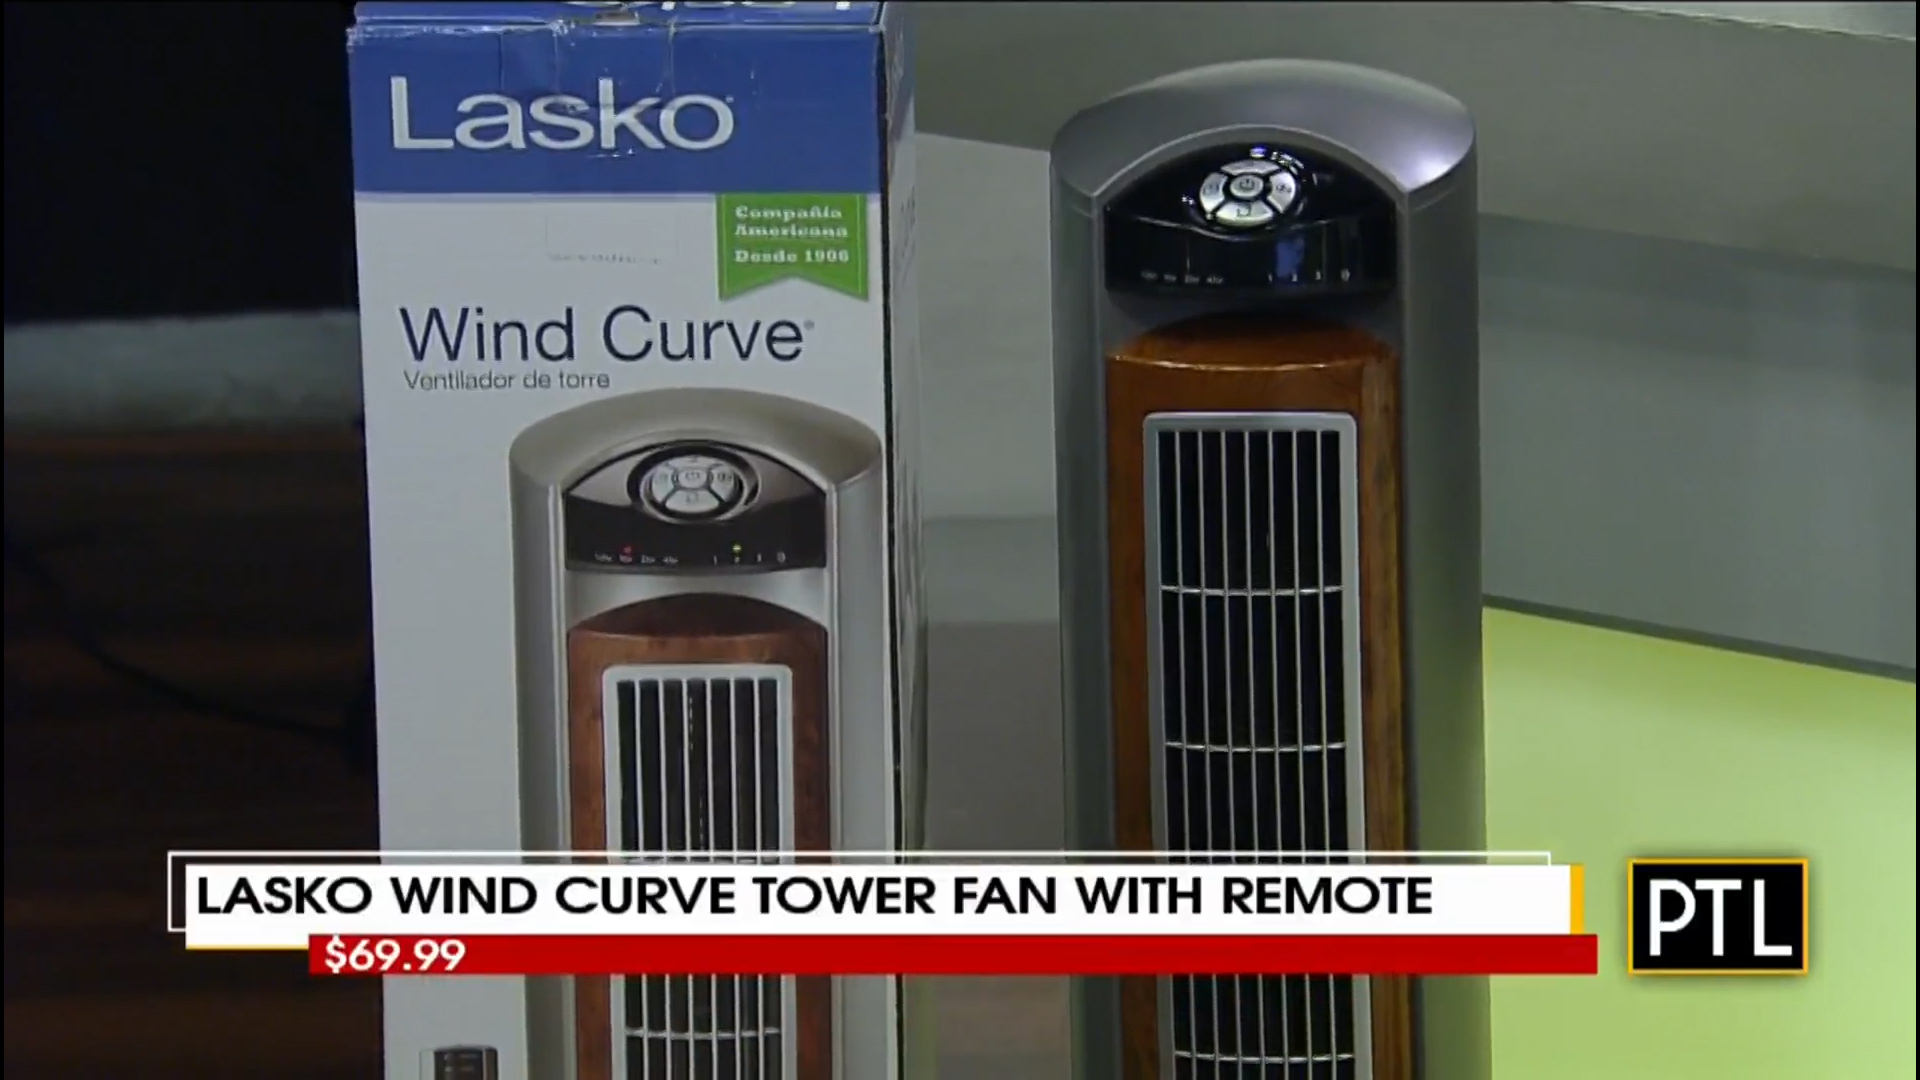 LASKO WIND CURVE TOWER FAN with REMOTE - $69.99Shop Now